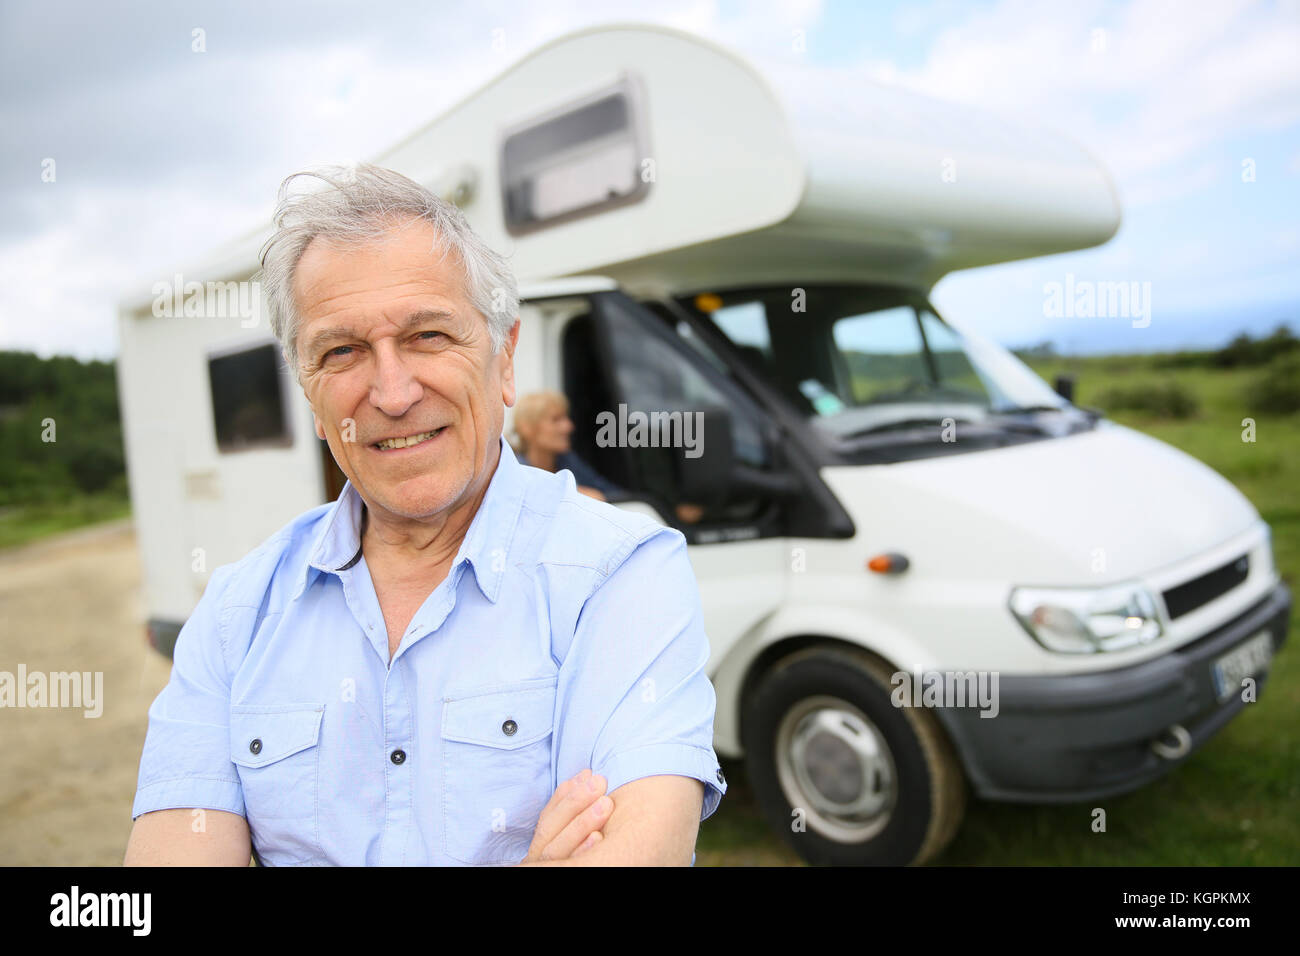 Portrait of happy senior man standing in front of motorhome - Stock Image